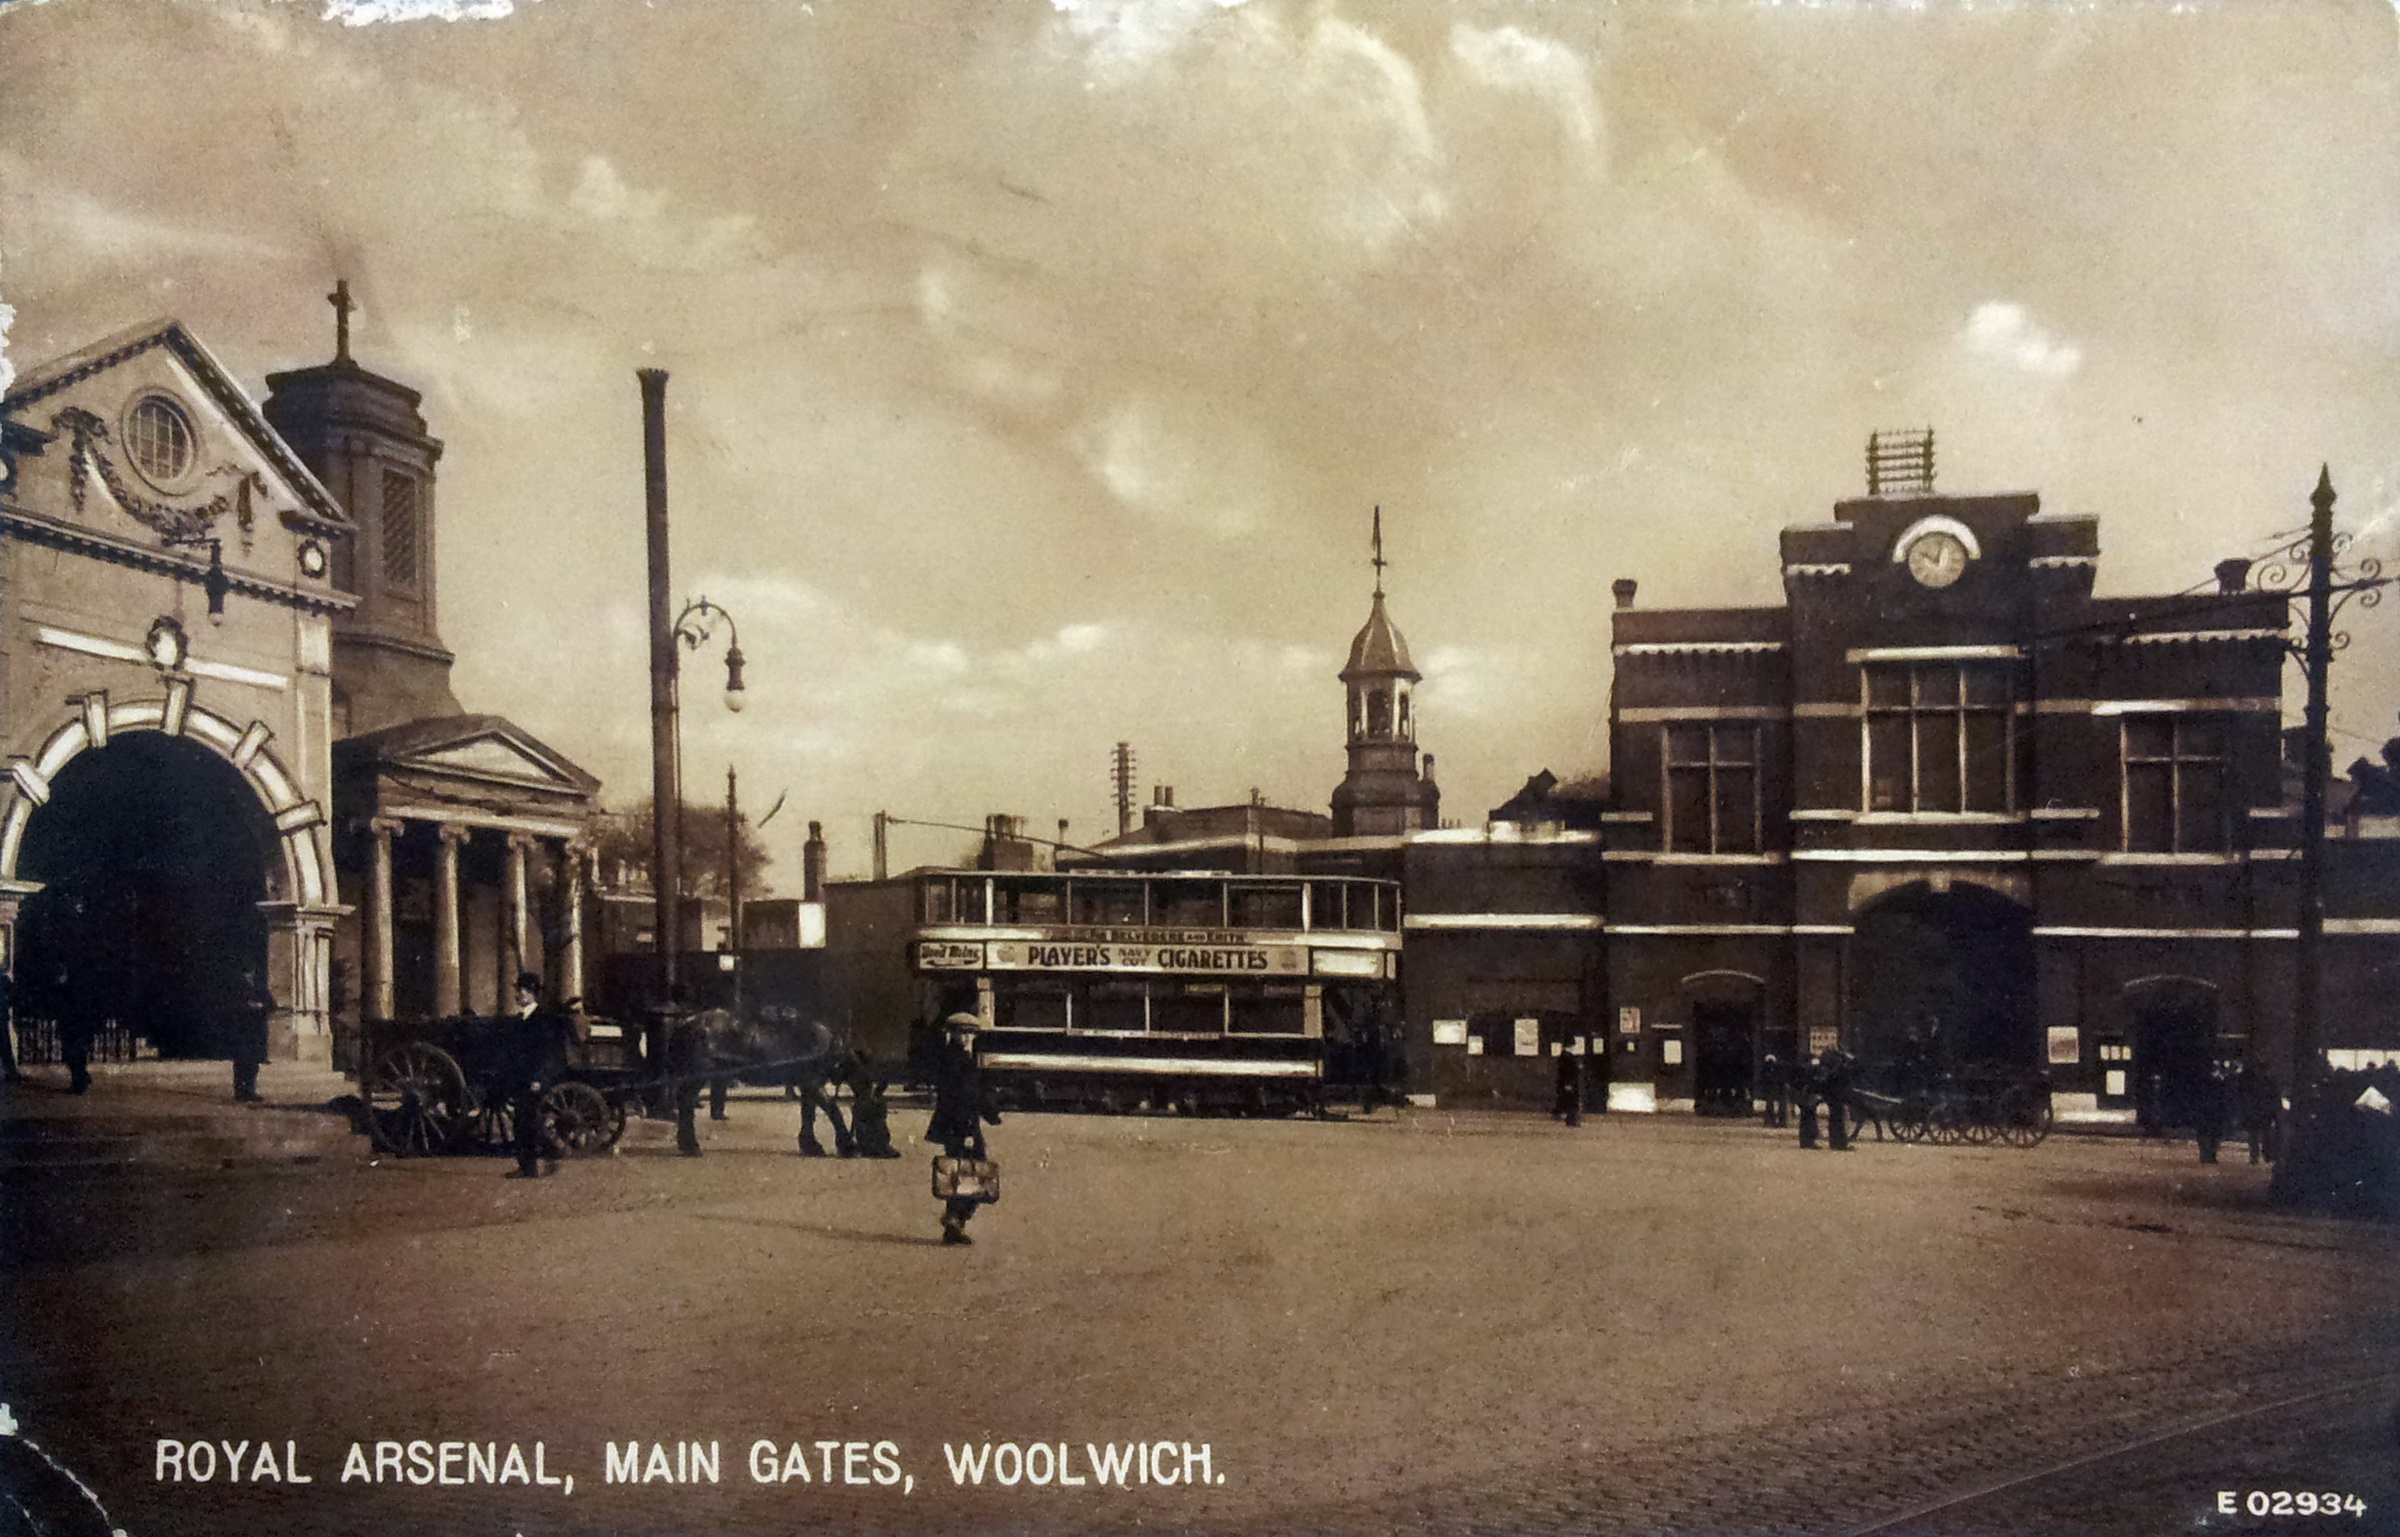 File:London, Woolwich, Beresford Square (GHC).jpg - Wikimedia Commons